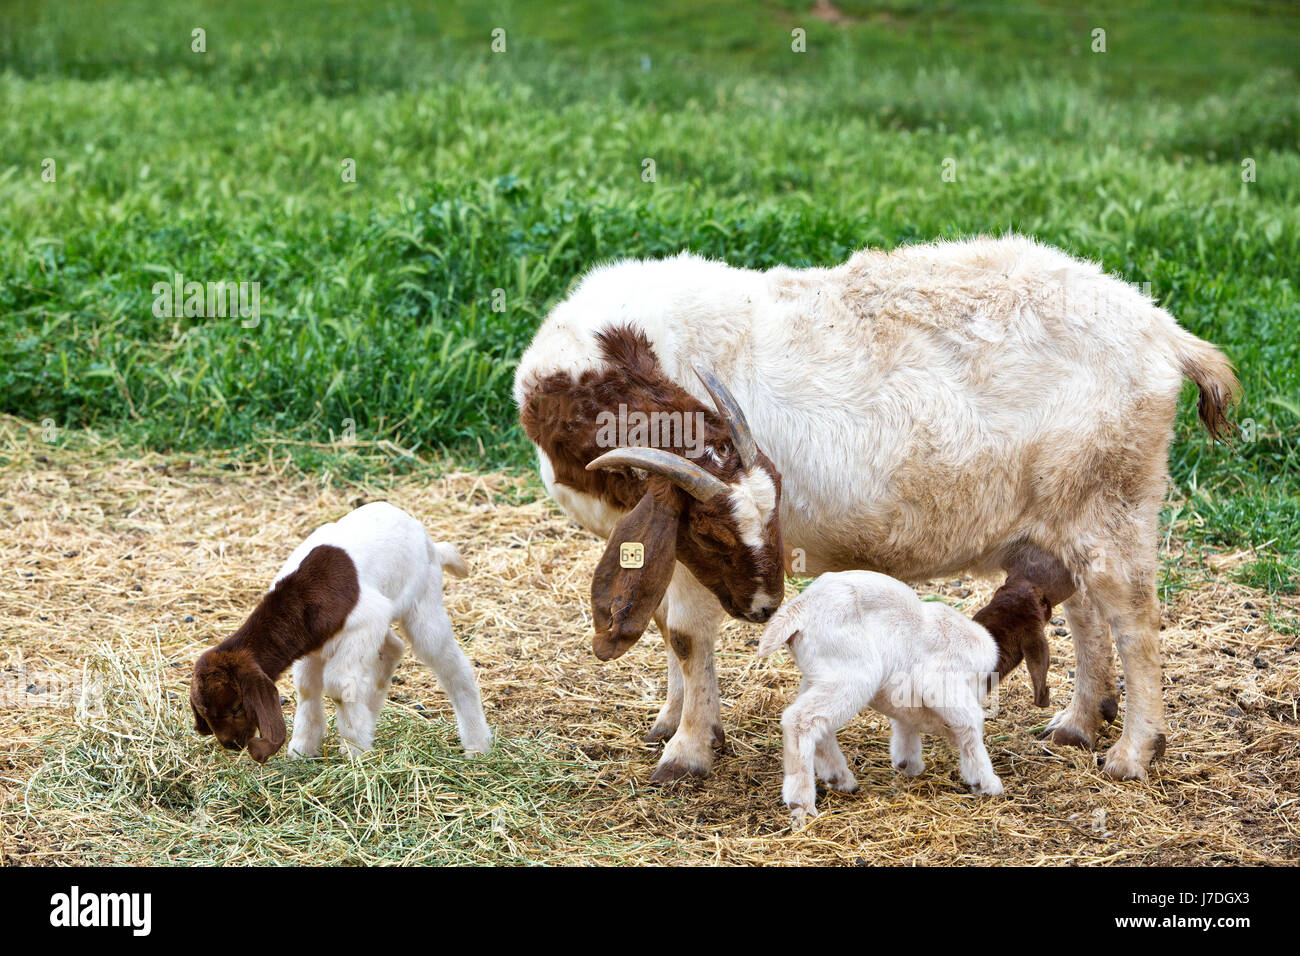 Mother Boer Goat 'Capra aegagrus hircus' with two day old kids,  nursing & feeding on alfalfa,  barnyard, - Stock Image